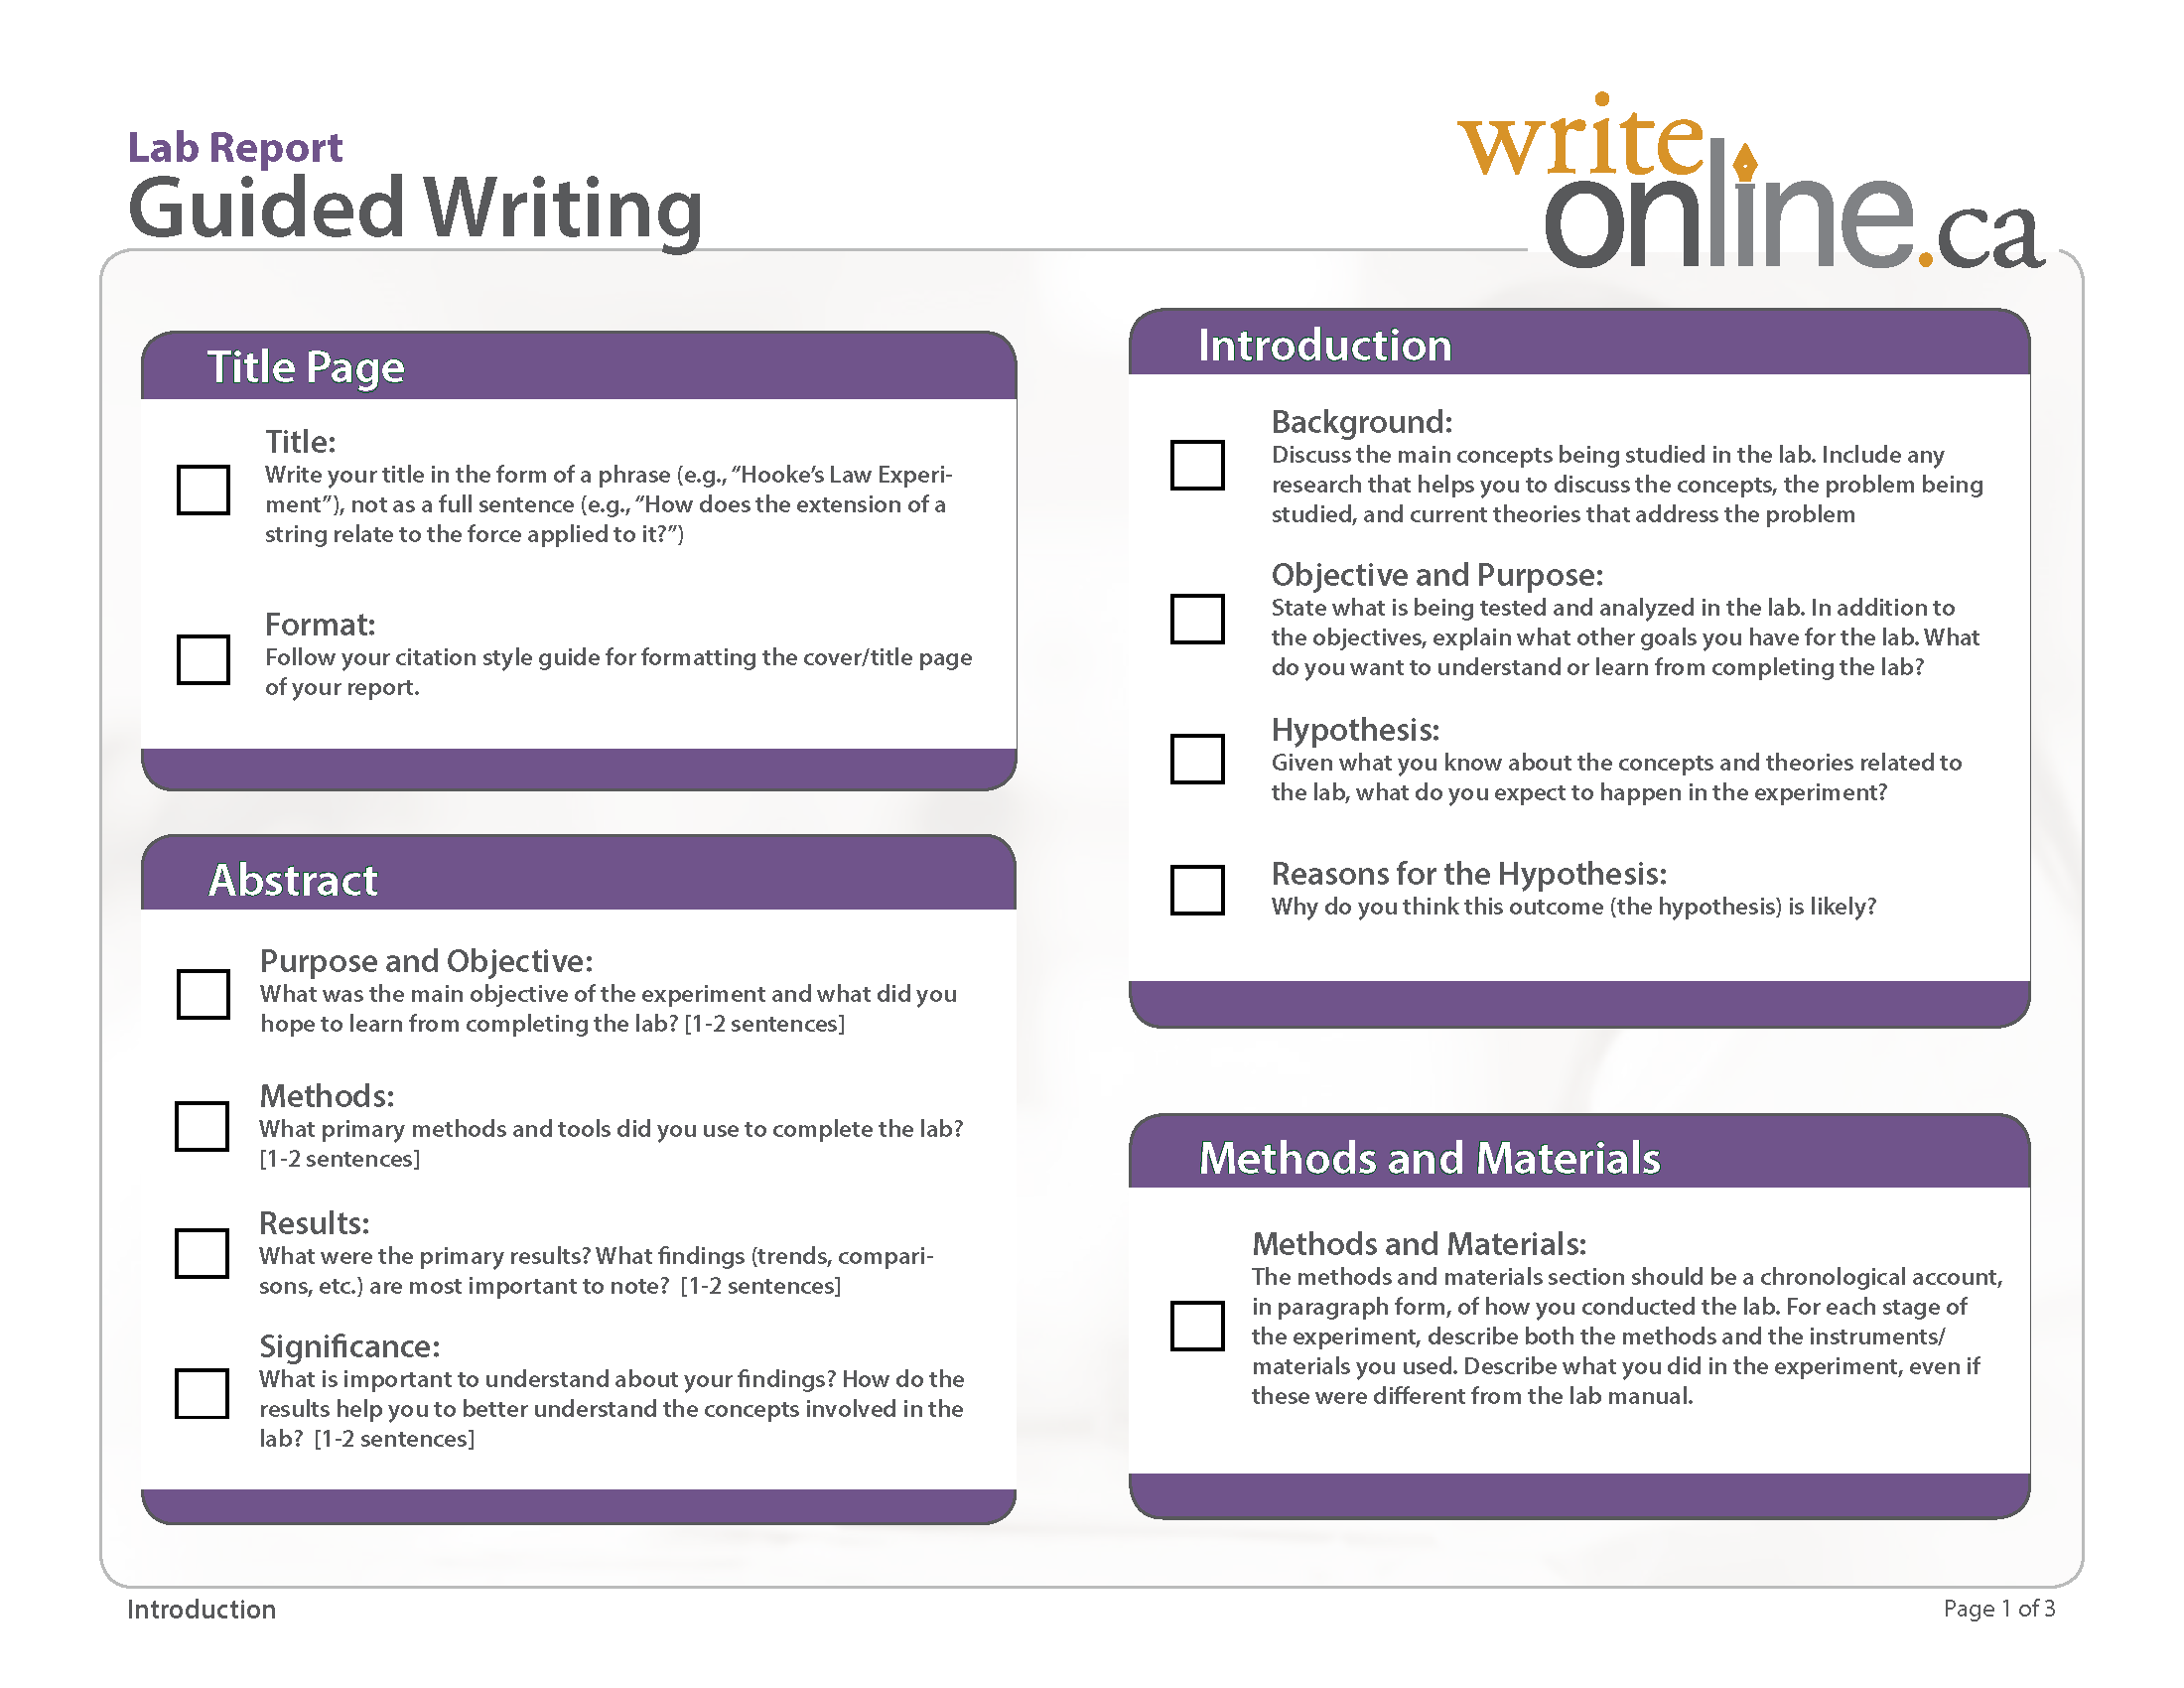 Write Online Guided Writing Tool